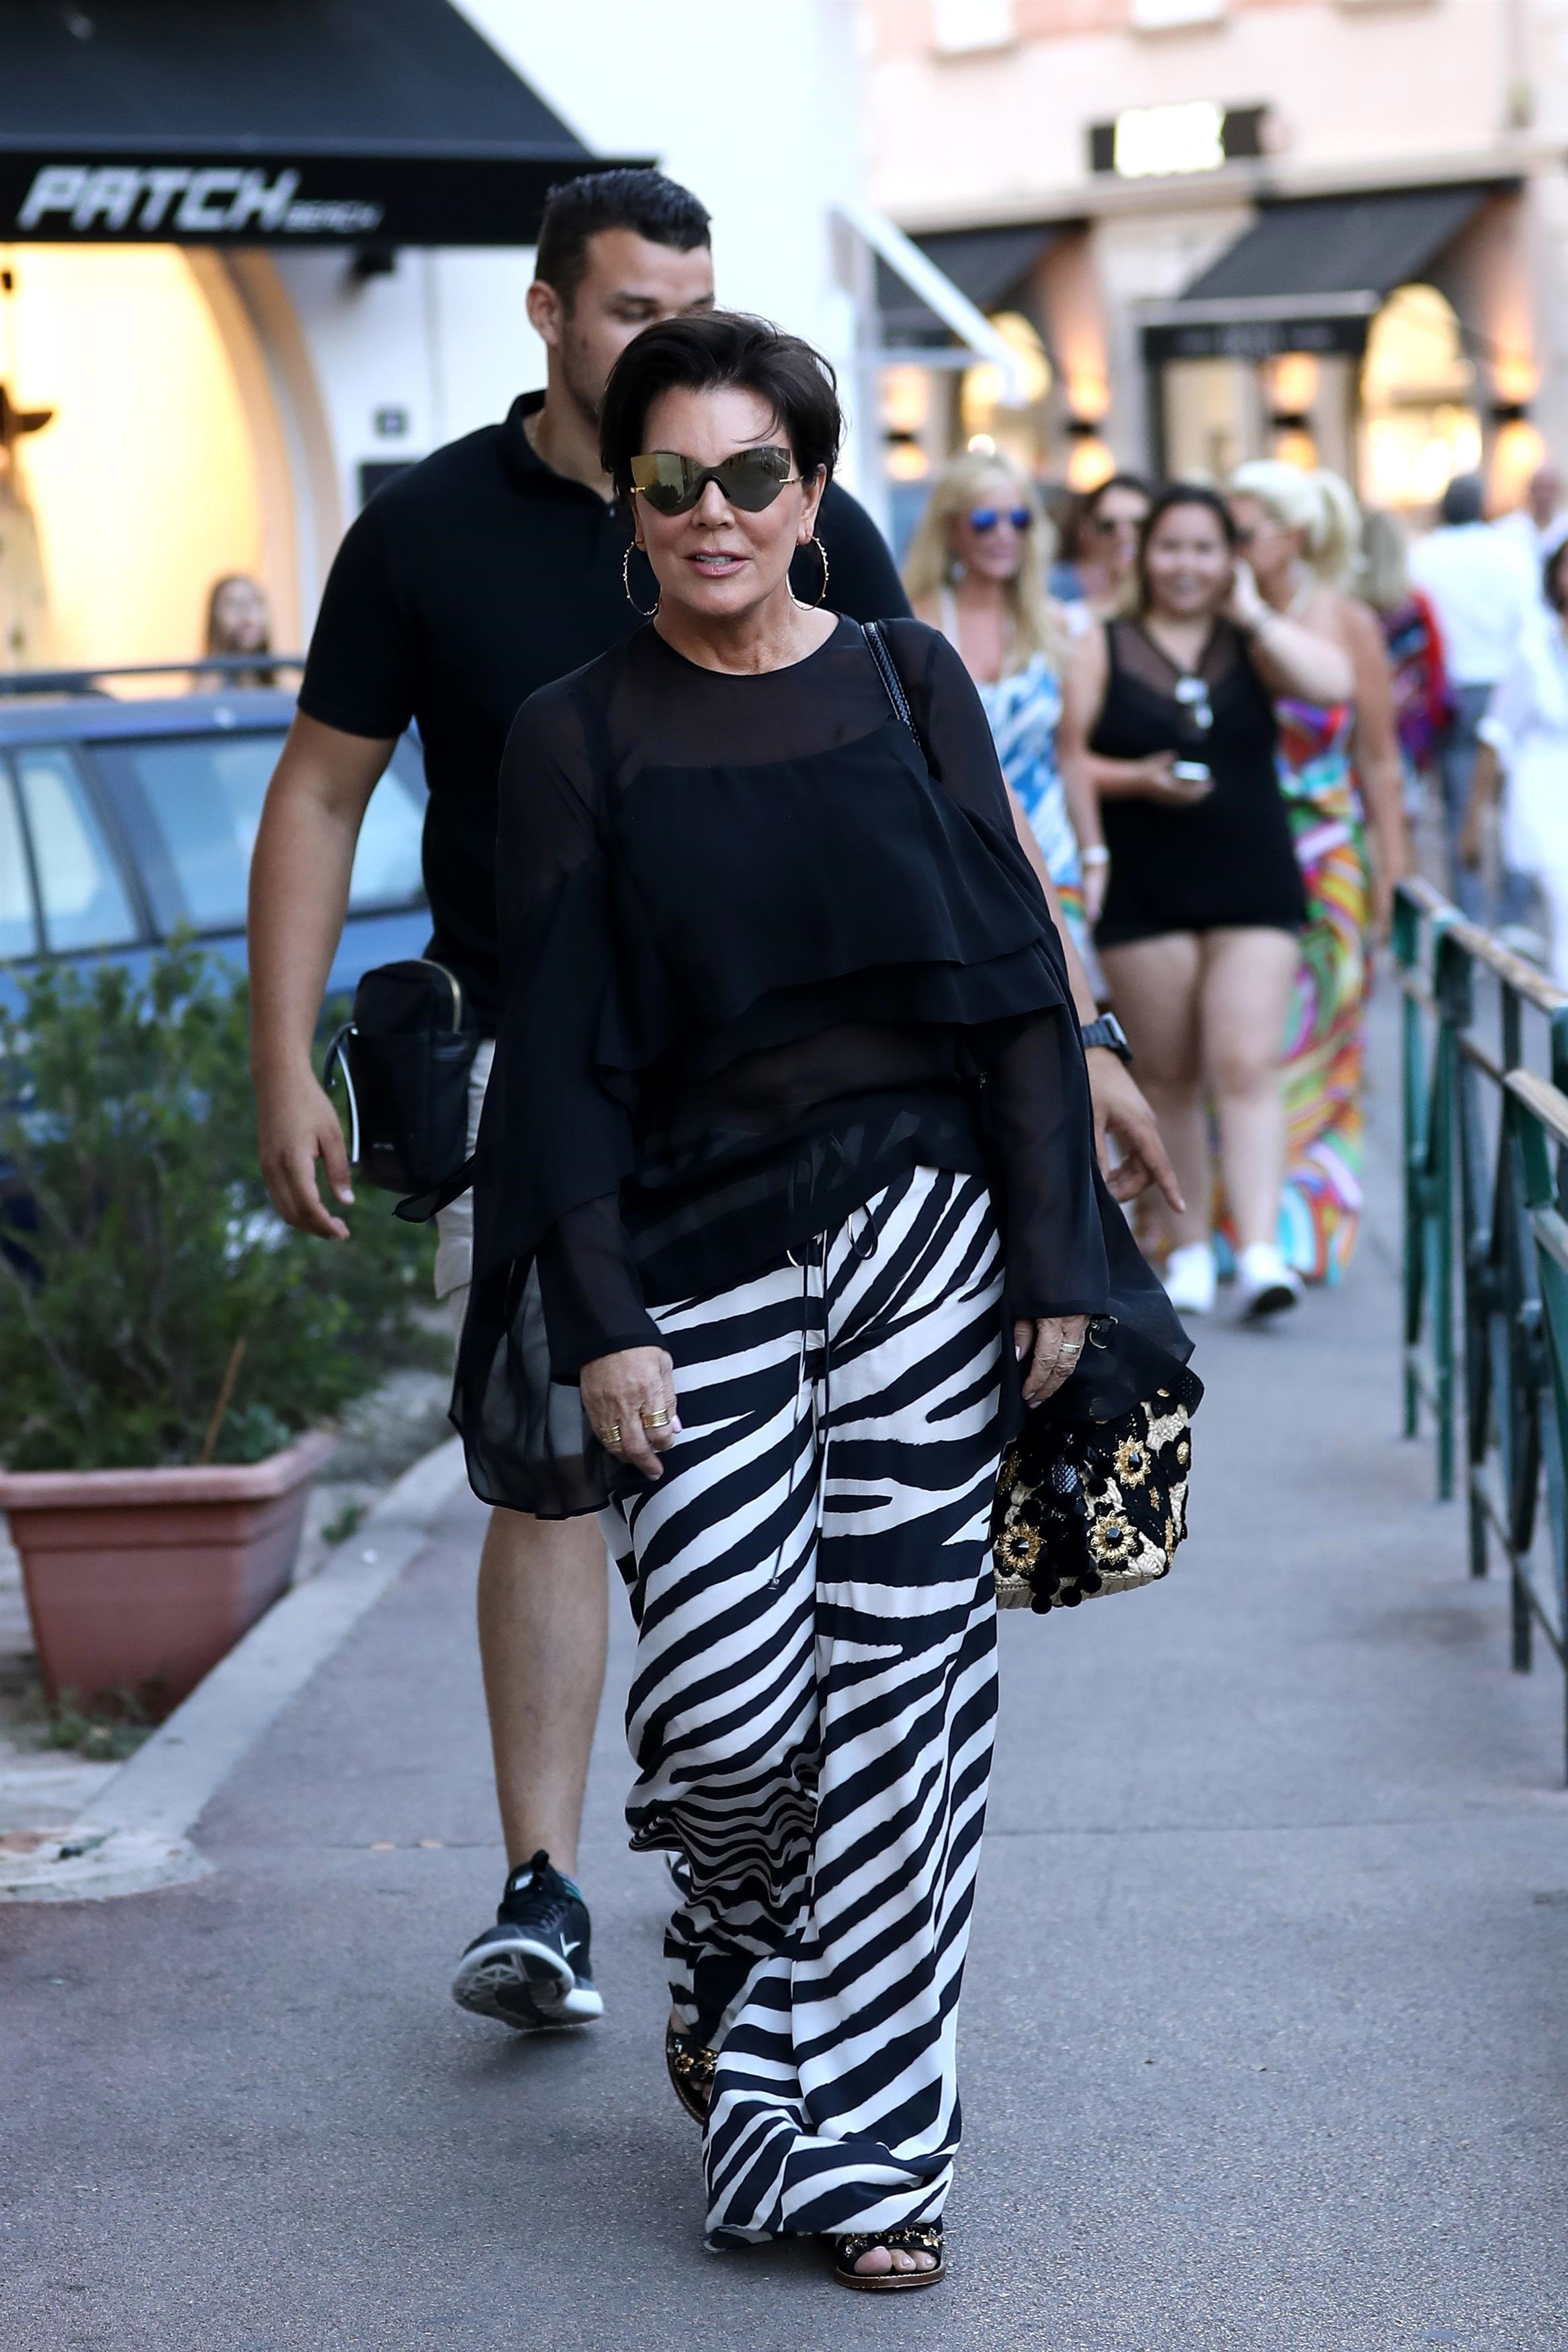 ** RIGHTS: ONLY UNITED STATES, CANADA ** Saint-Tropez, FRANCE  - TV personality Kris Jenner was seen doing shopping while on holiday in Saint-Tropez, France.  Pictured: Kris Jenner  BACKGRID USA 10 JULY 2017   BYLINE MUST READ: Best Image / BACKGRID  USA: +1 310 798 9111 / usasales@backgrid.com  UK: +44 208 344 2007 / uksales@backgrid.com  *UK Clients - Pictures Containing Children Please Pixelate Face Prior To Publication*